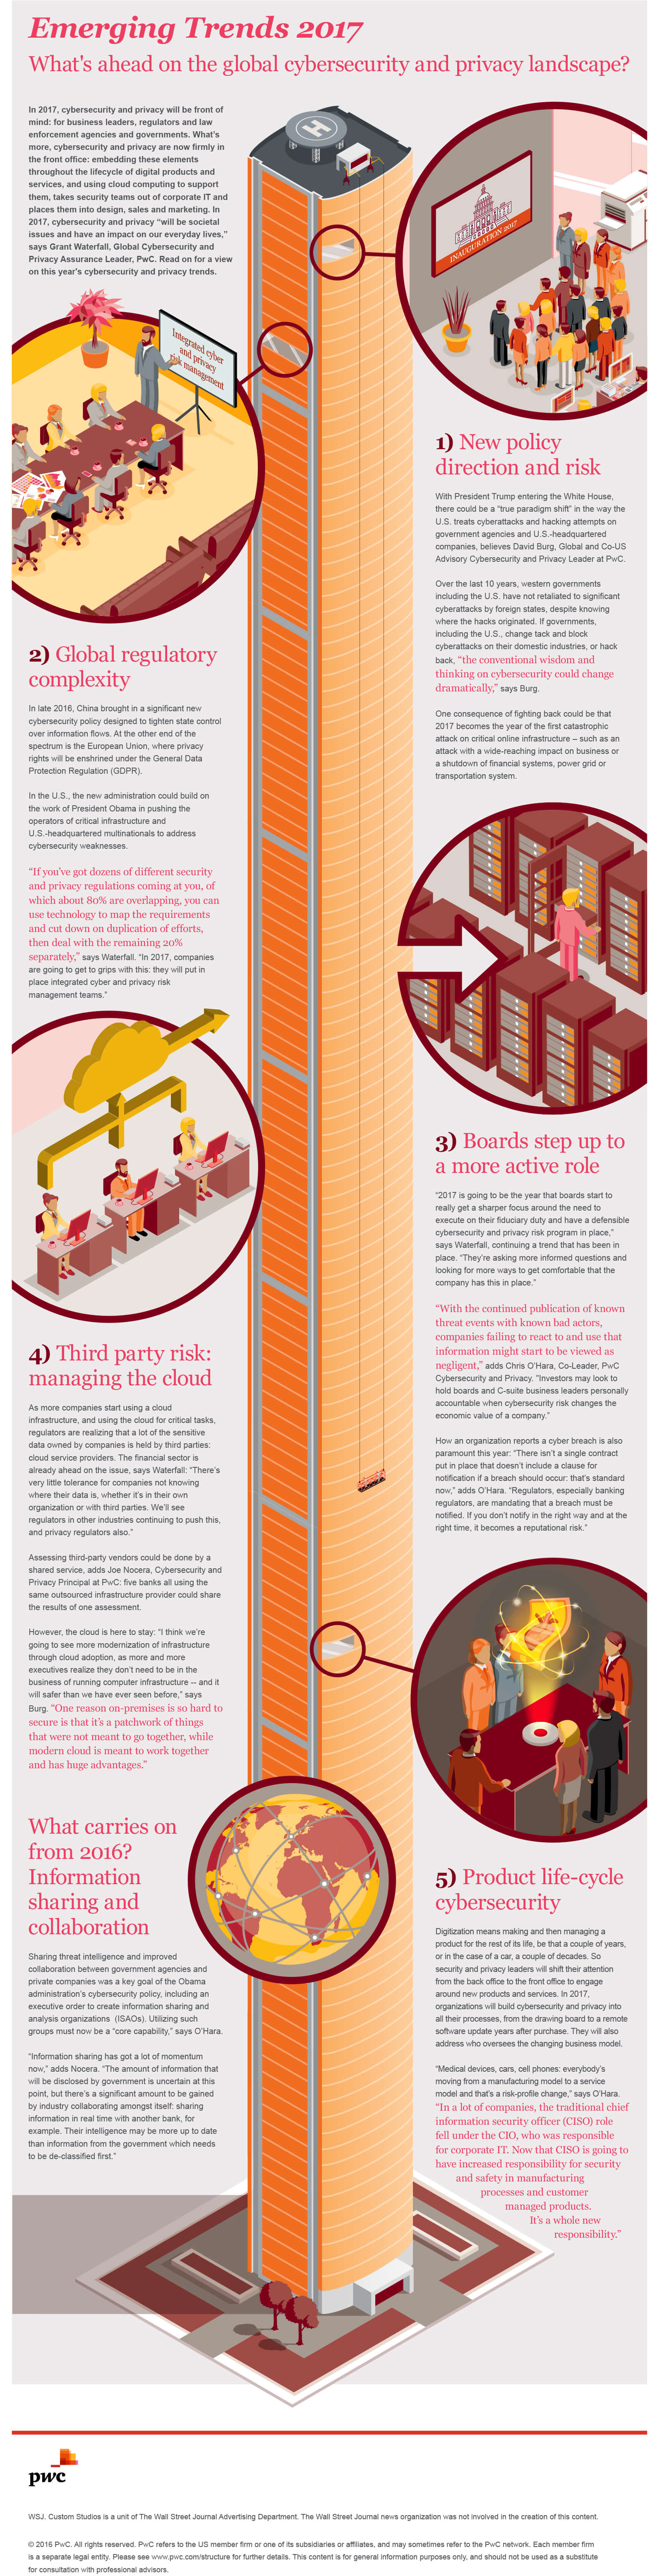 PWC Cyber Trends V6